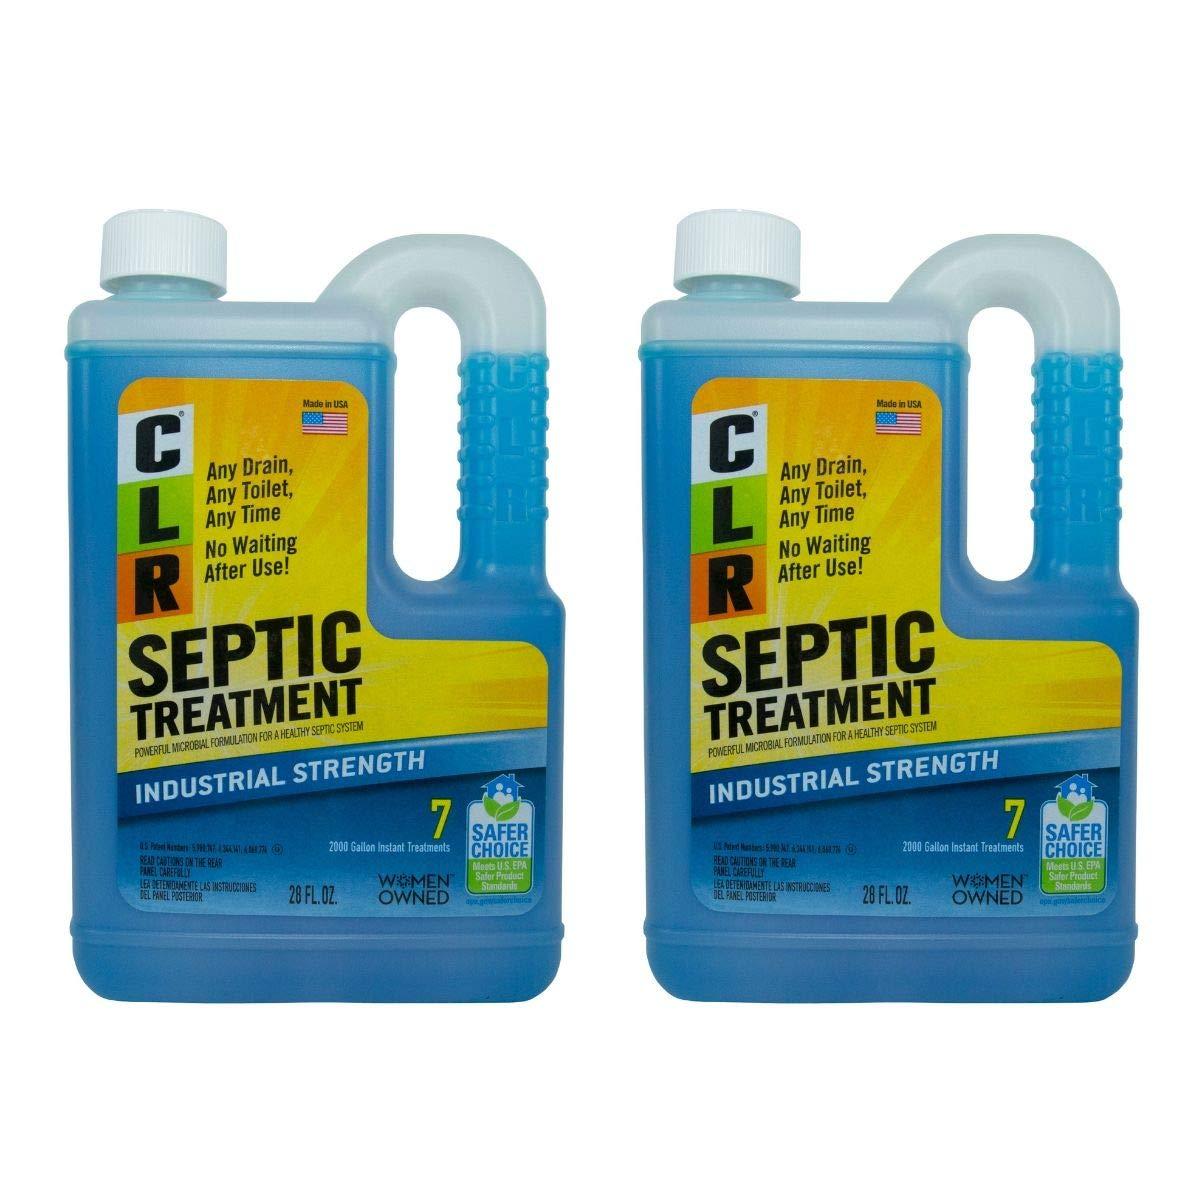 CLR Septic System Treatment Environmentally-Friendly Fast-Acting 28 Oz (Pack of 2) by CLR